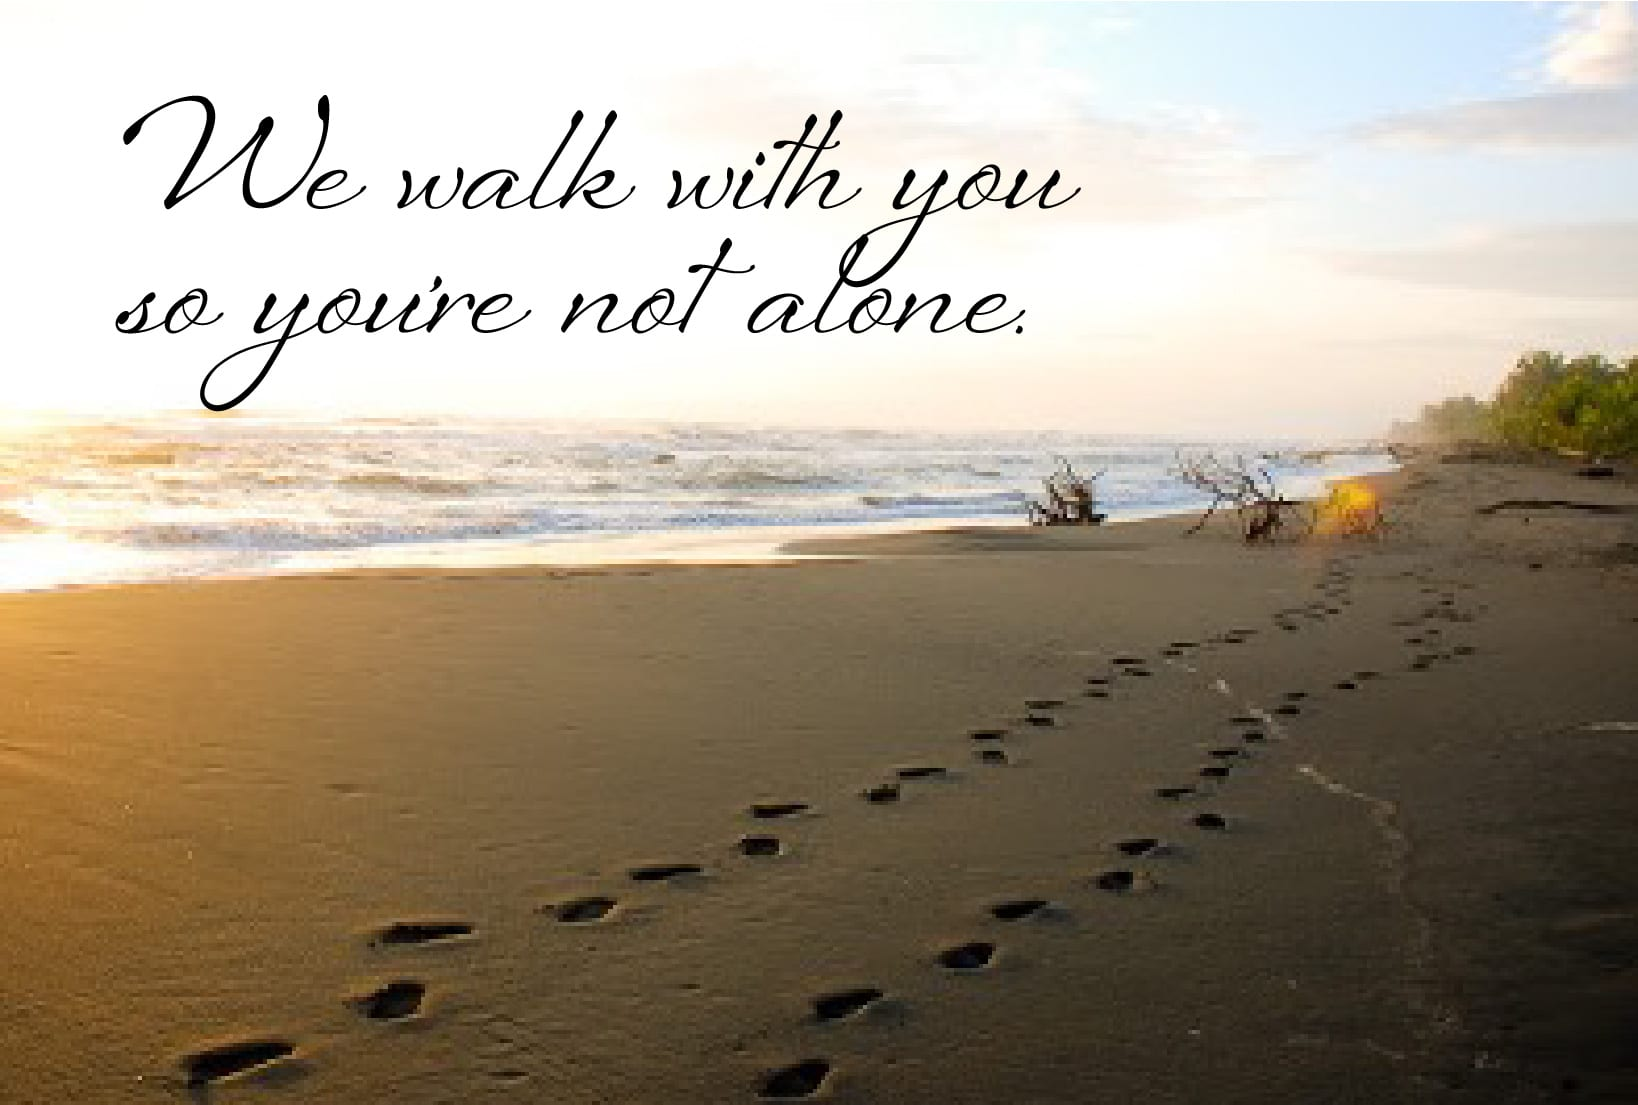 we walk with you so you're not alone.